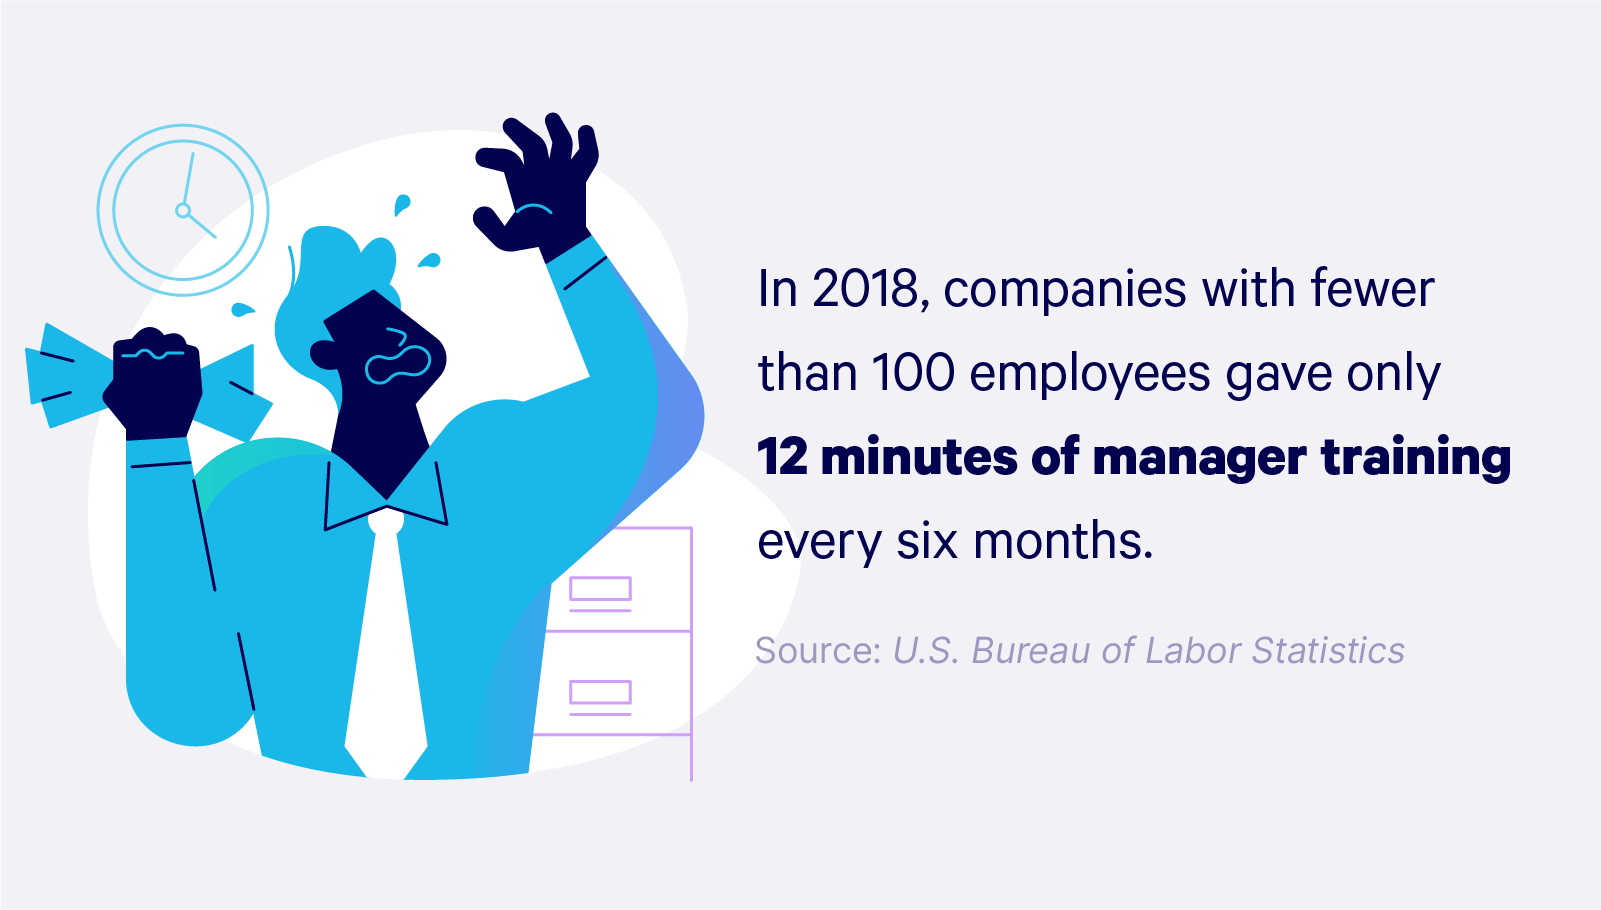 Illustrated statistic with copy: In 2018, companies with fewer than 100 employees gave only 12 minutes of manager training every six months.